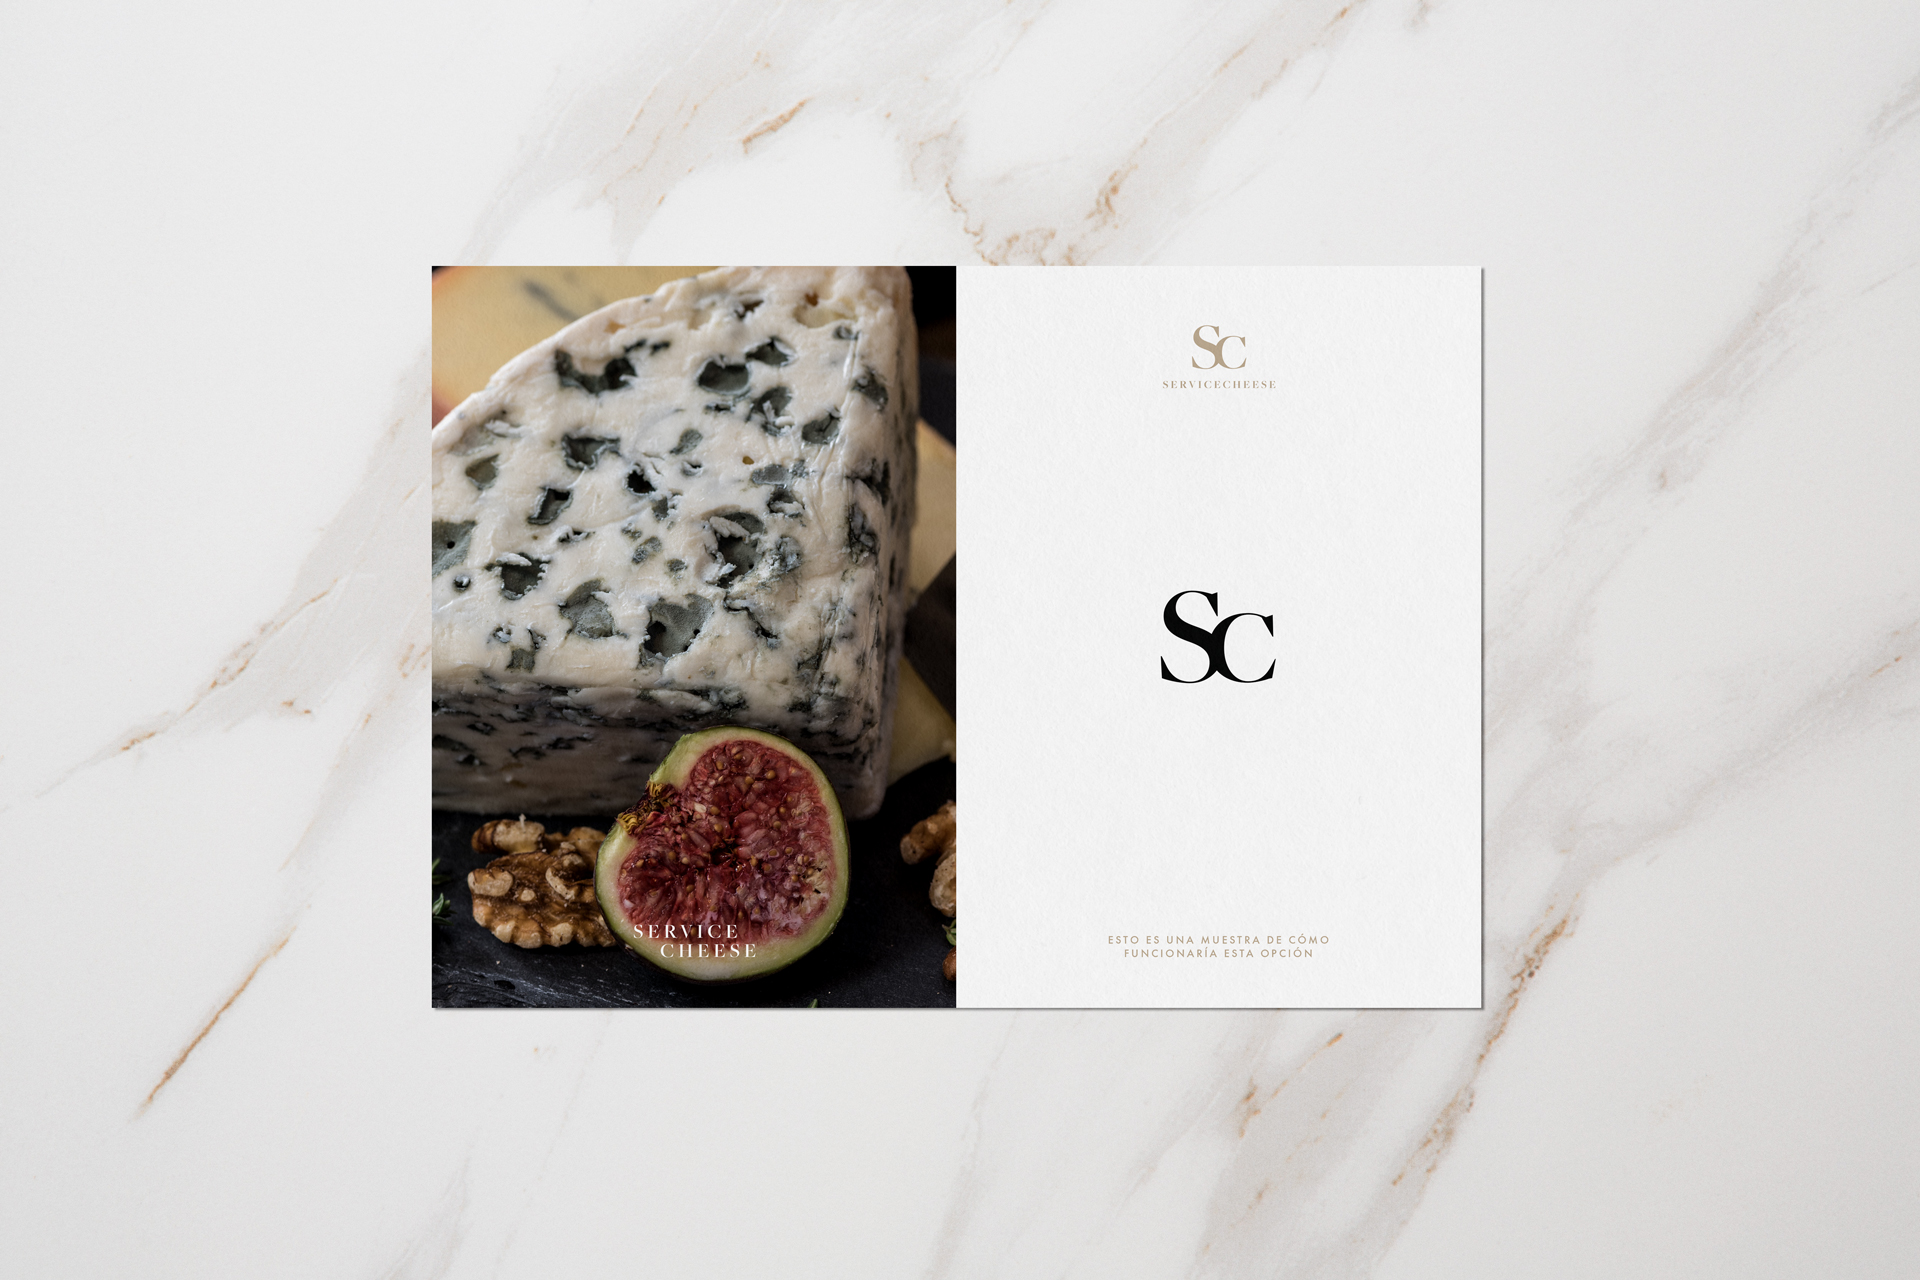 Servicecheese cheese importers branding (logo design + website) by Éternel Design Studio